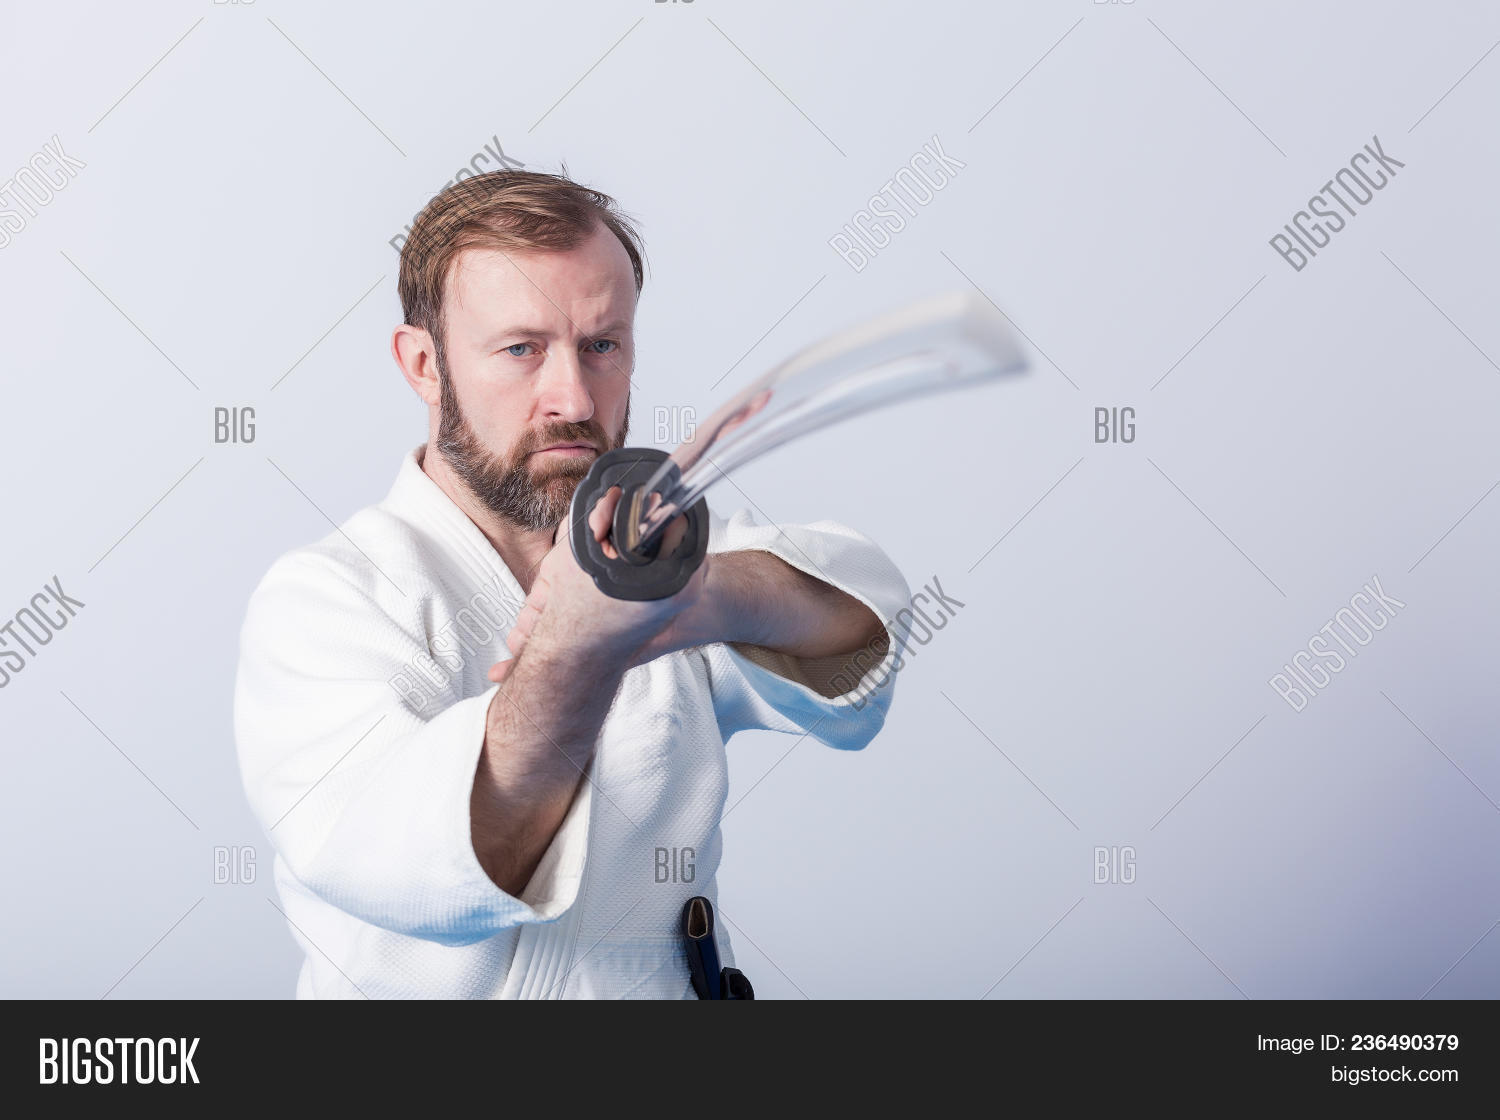 Man Katana On Iaido Image & Photo (Free Trial) | Bigstock